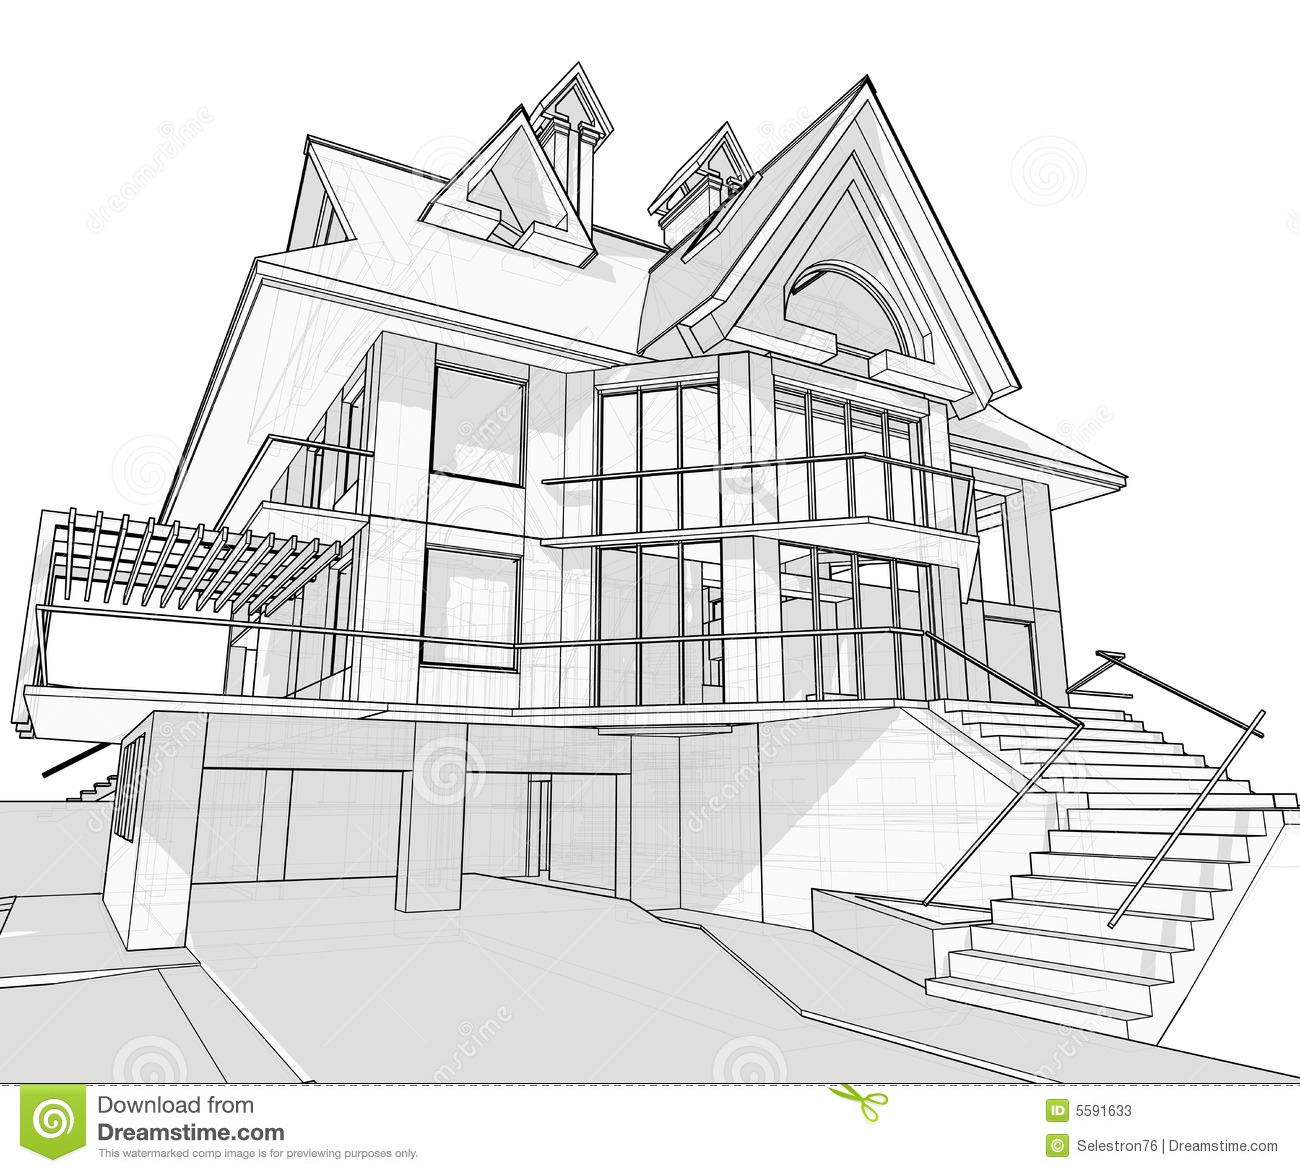 House architecture blueprint stock vector illustration for Online architecture design